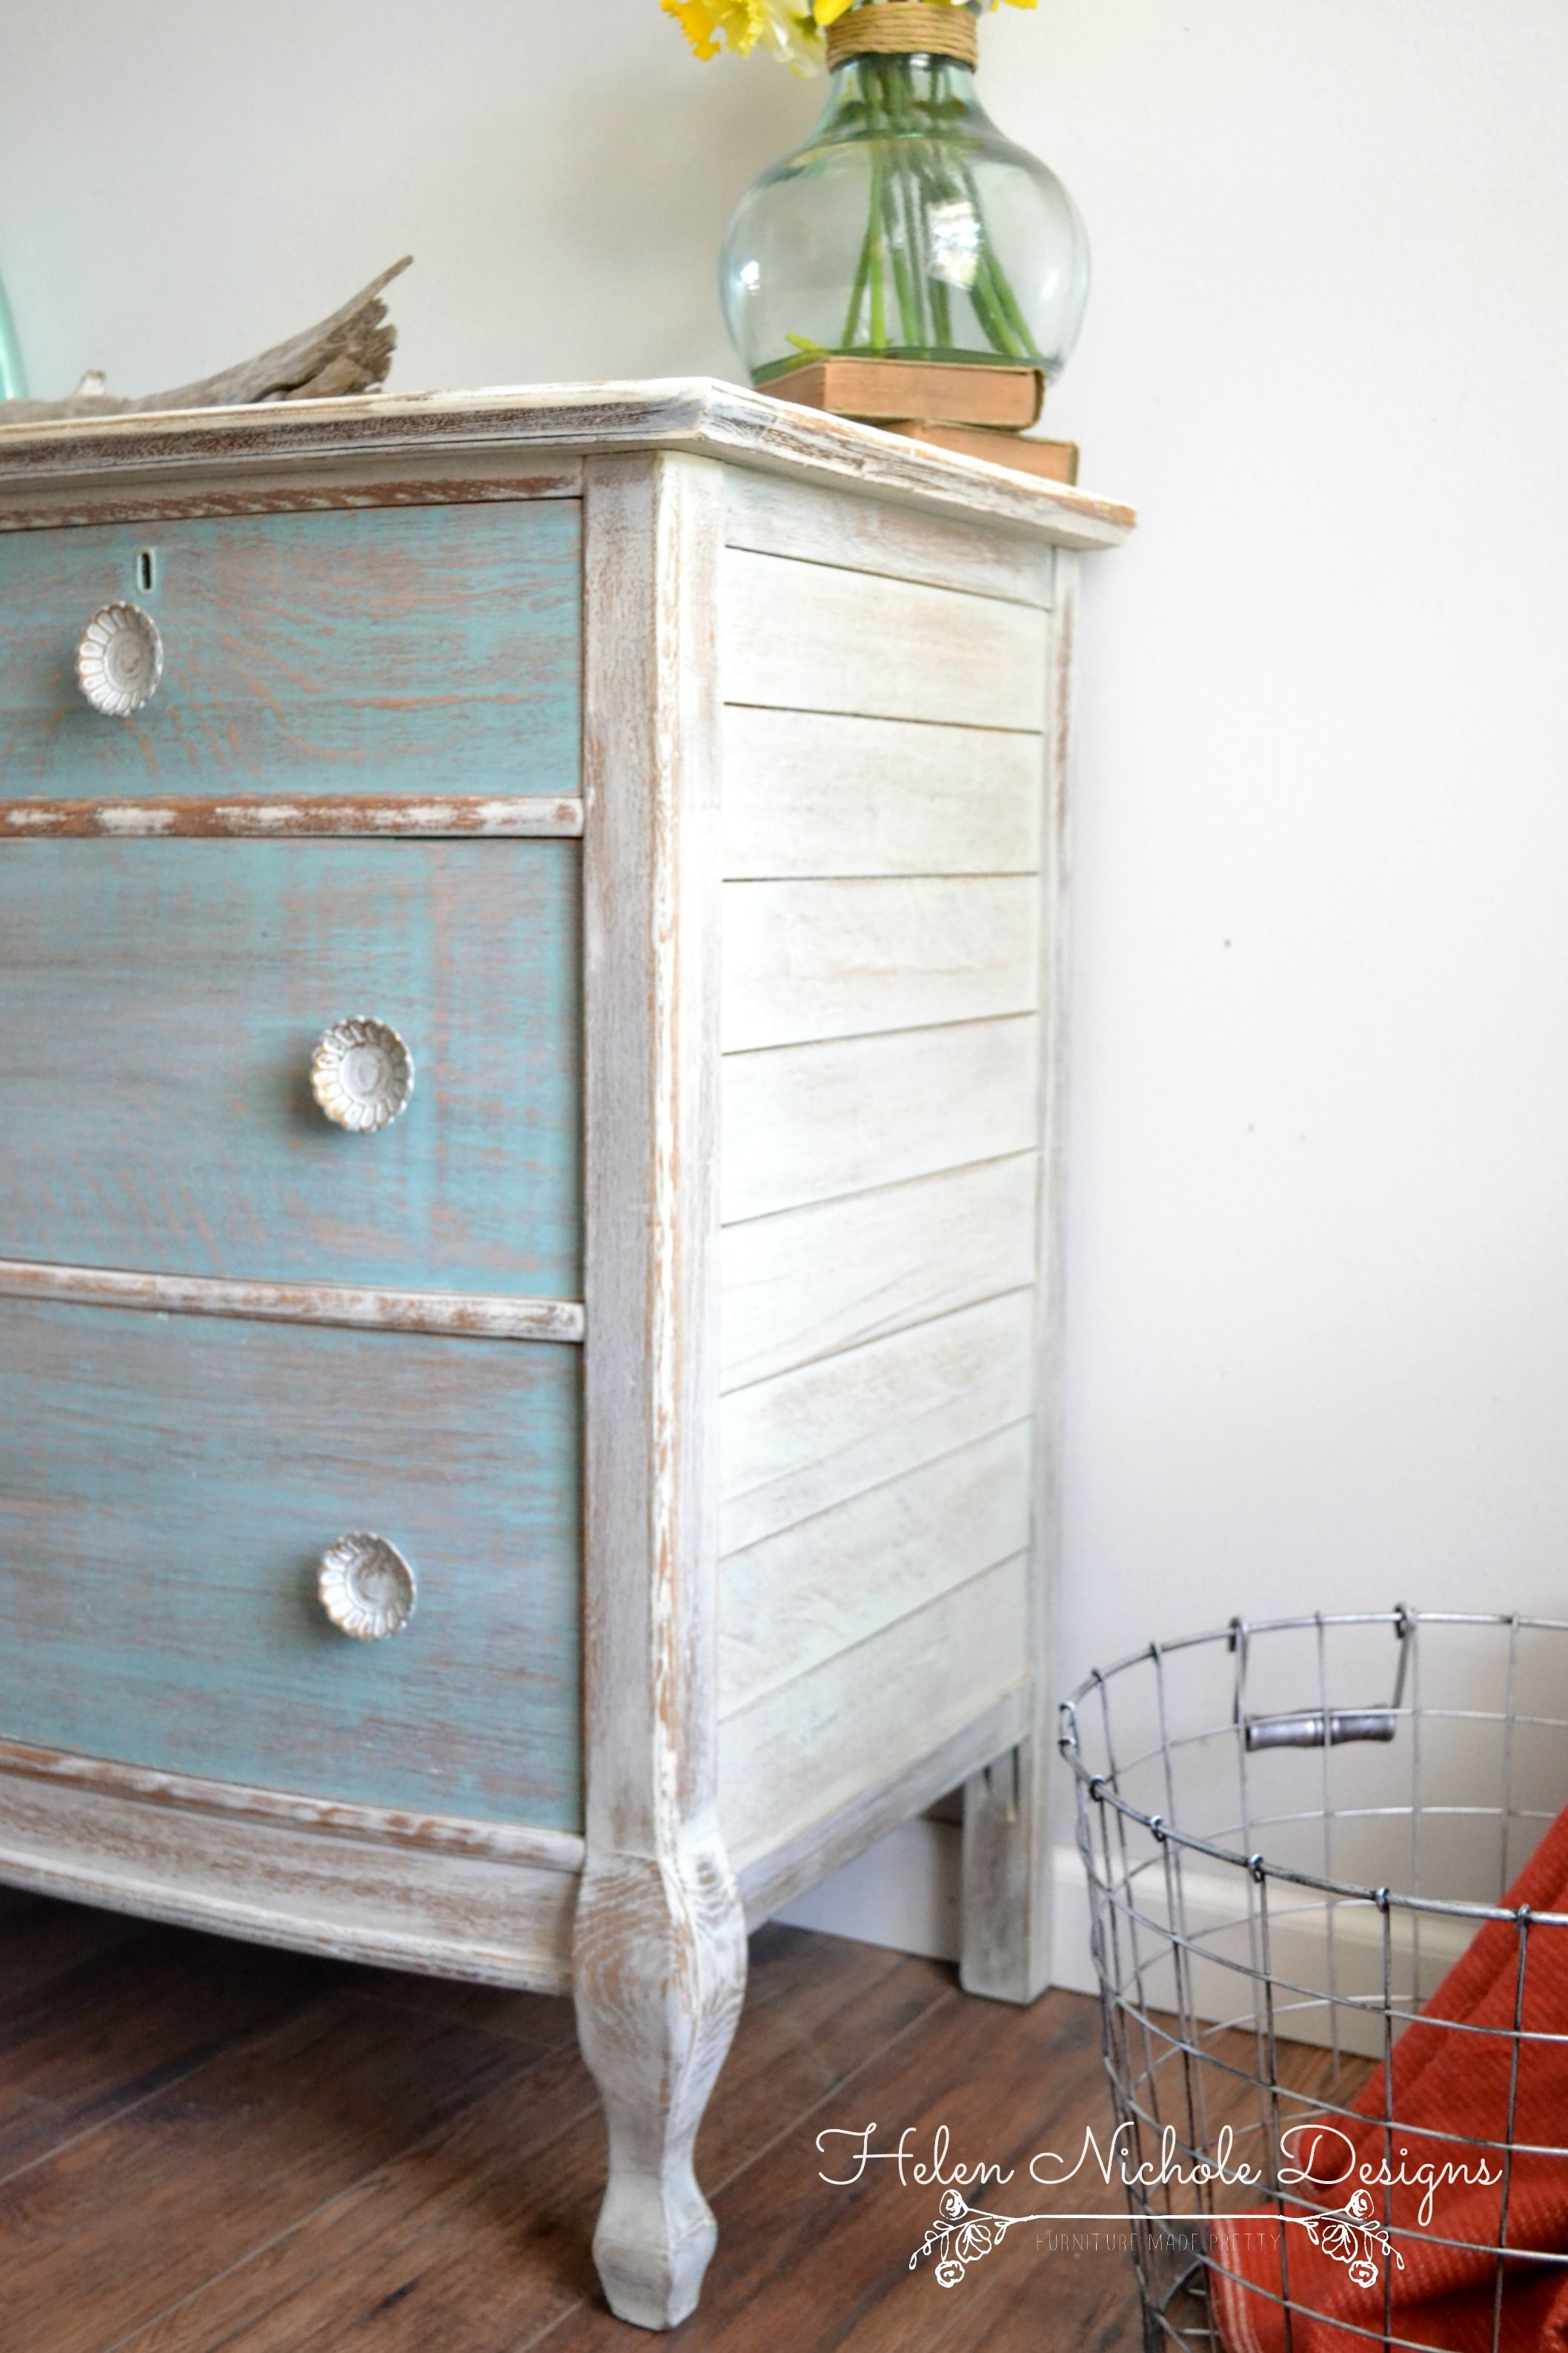 How To Create A Whitewash Finish Helen Nichole Designs Refinishing Furniture White Washed